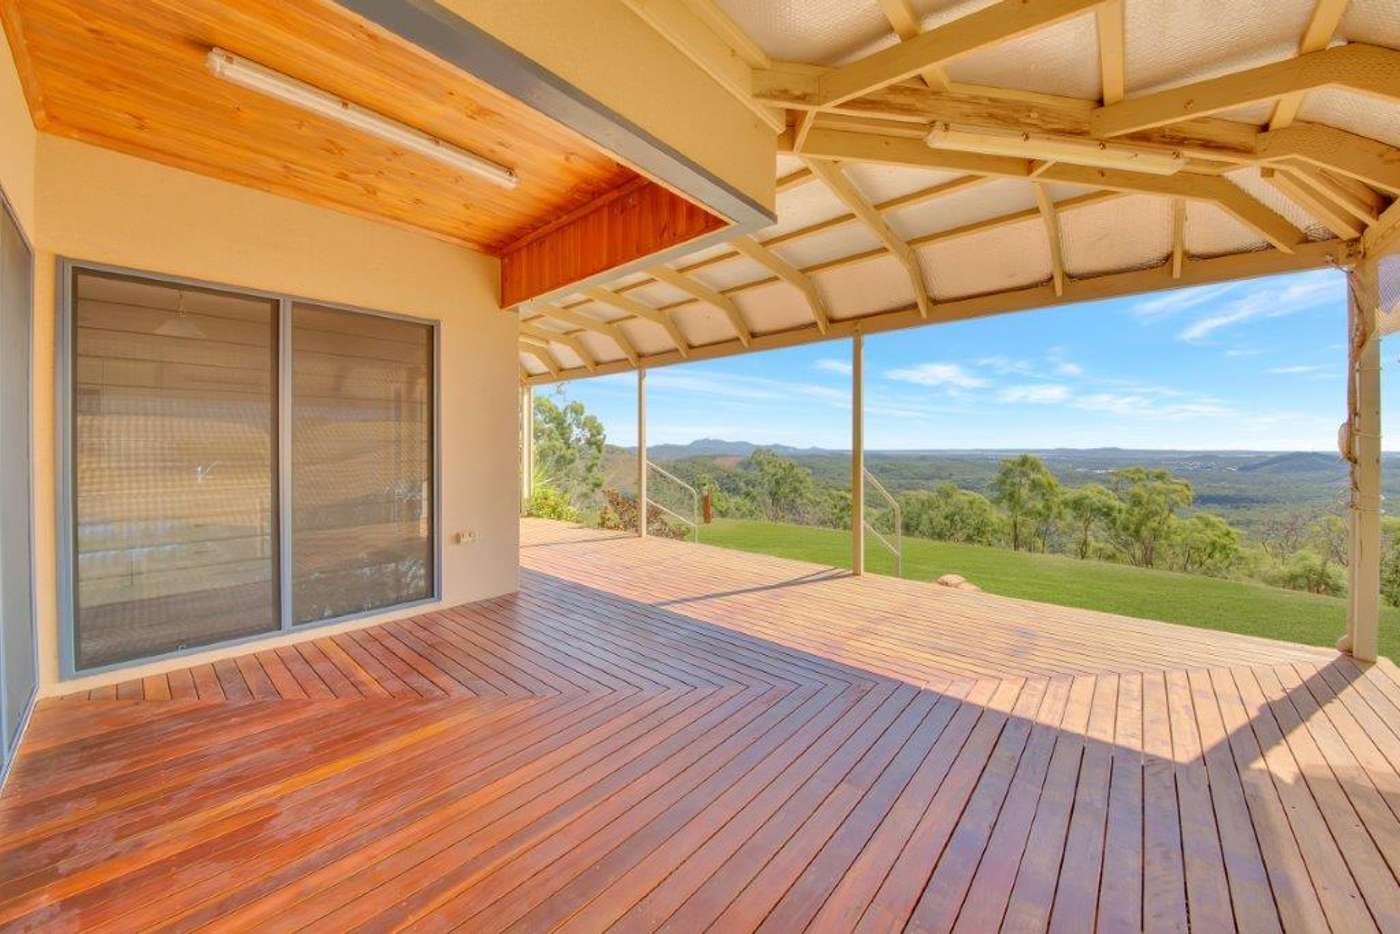 Seventh view of Homely house listing, 30 COMPIGNE ROAD, Wurdong Heights QLD 4680